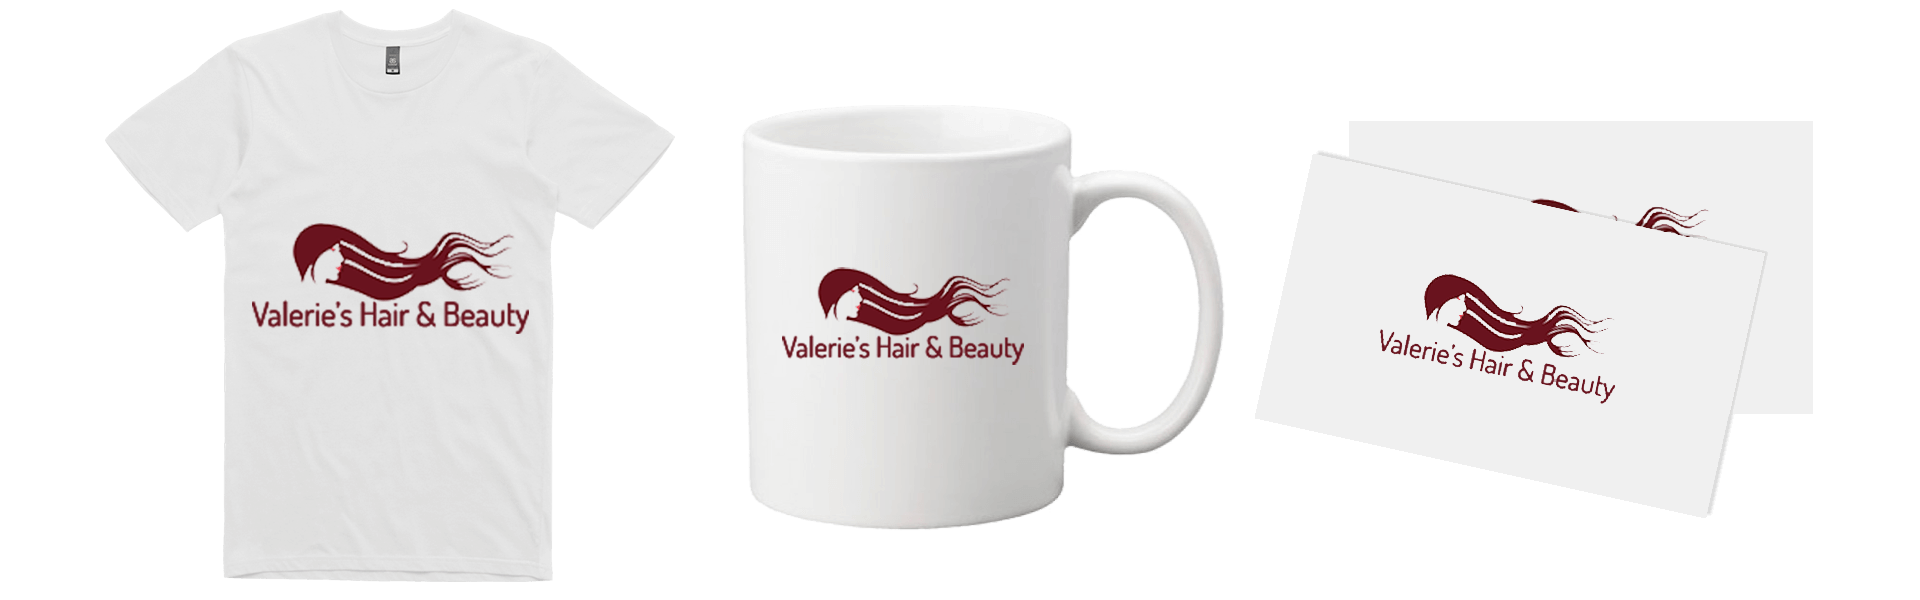 valeries hair and beauty